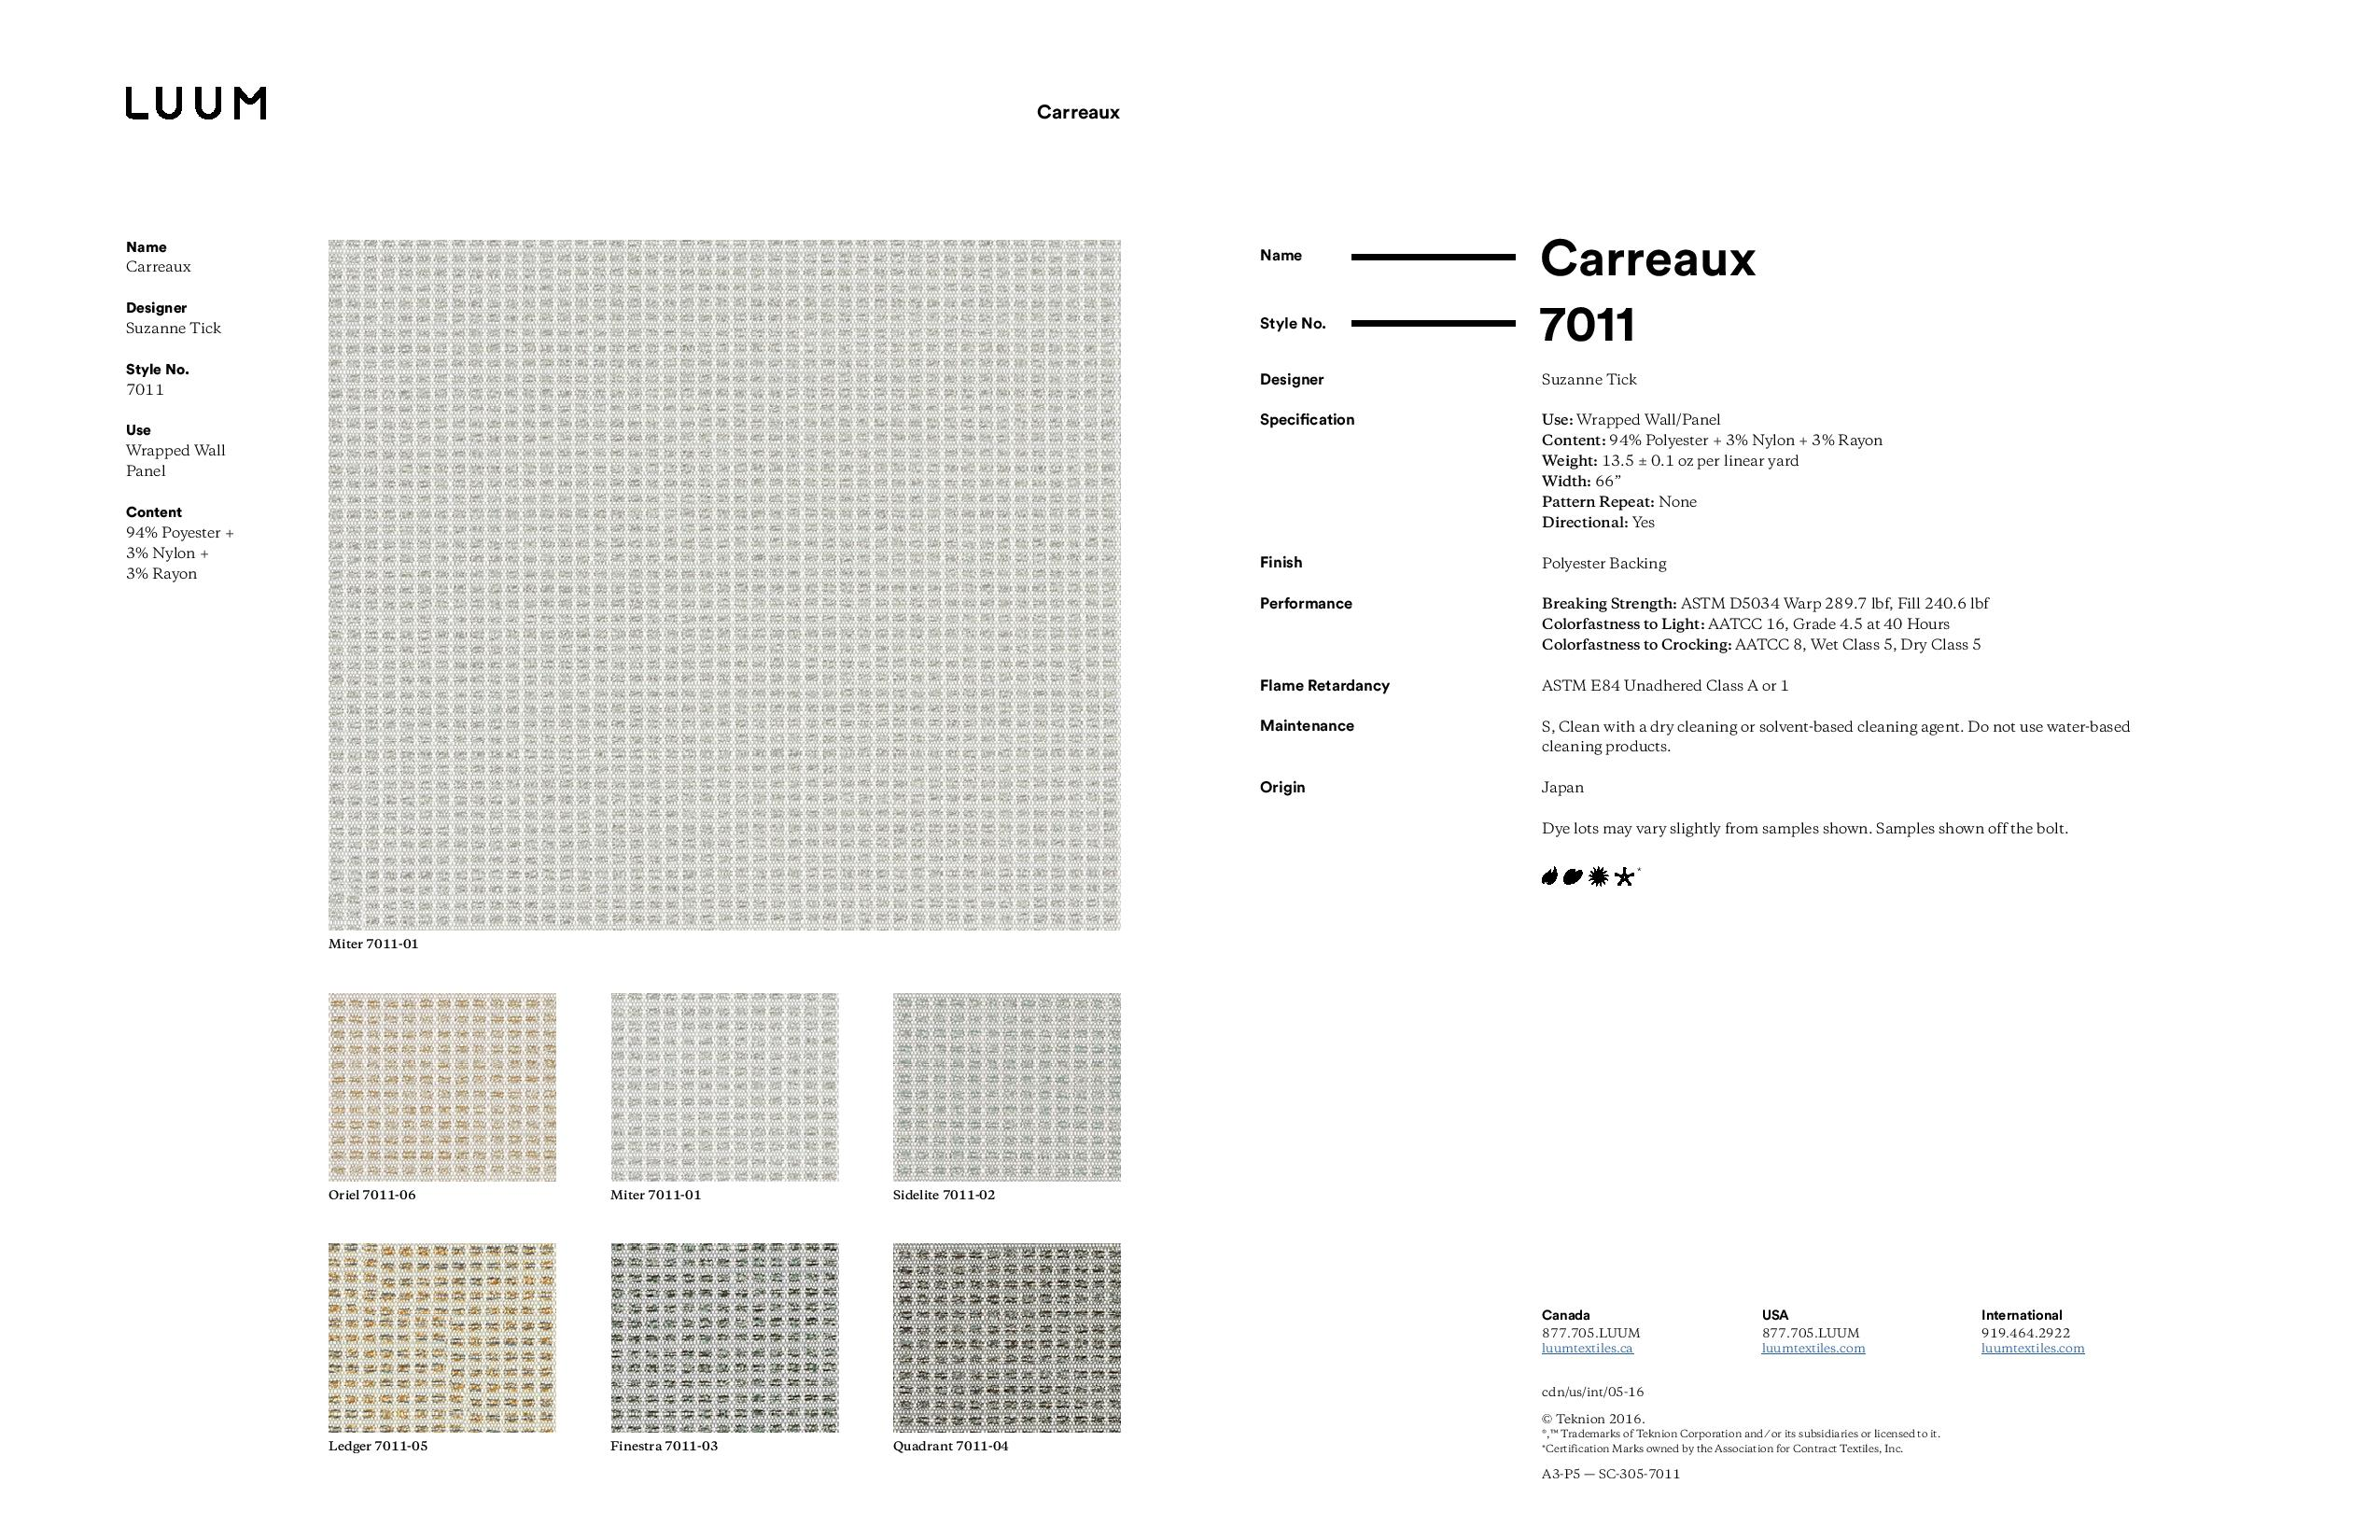 Carreaux - Ledger - 7011 - 05 - Half Yard Sample Card